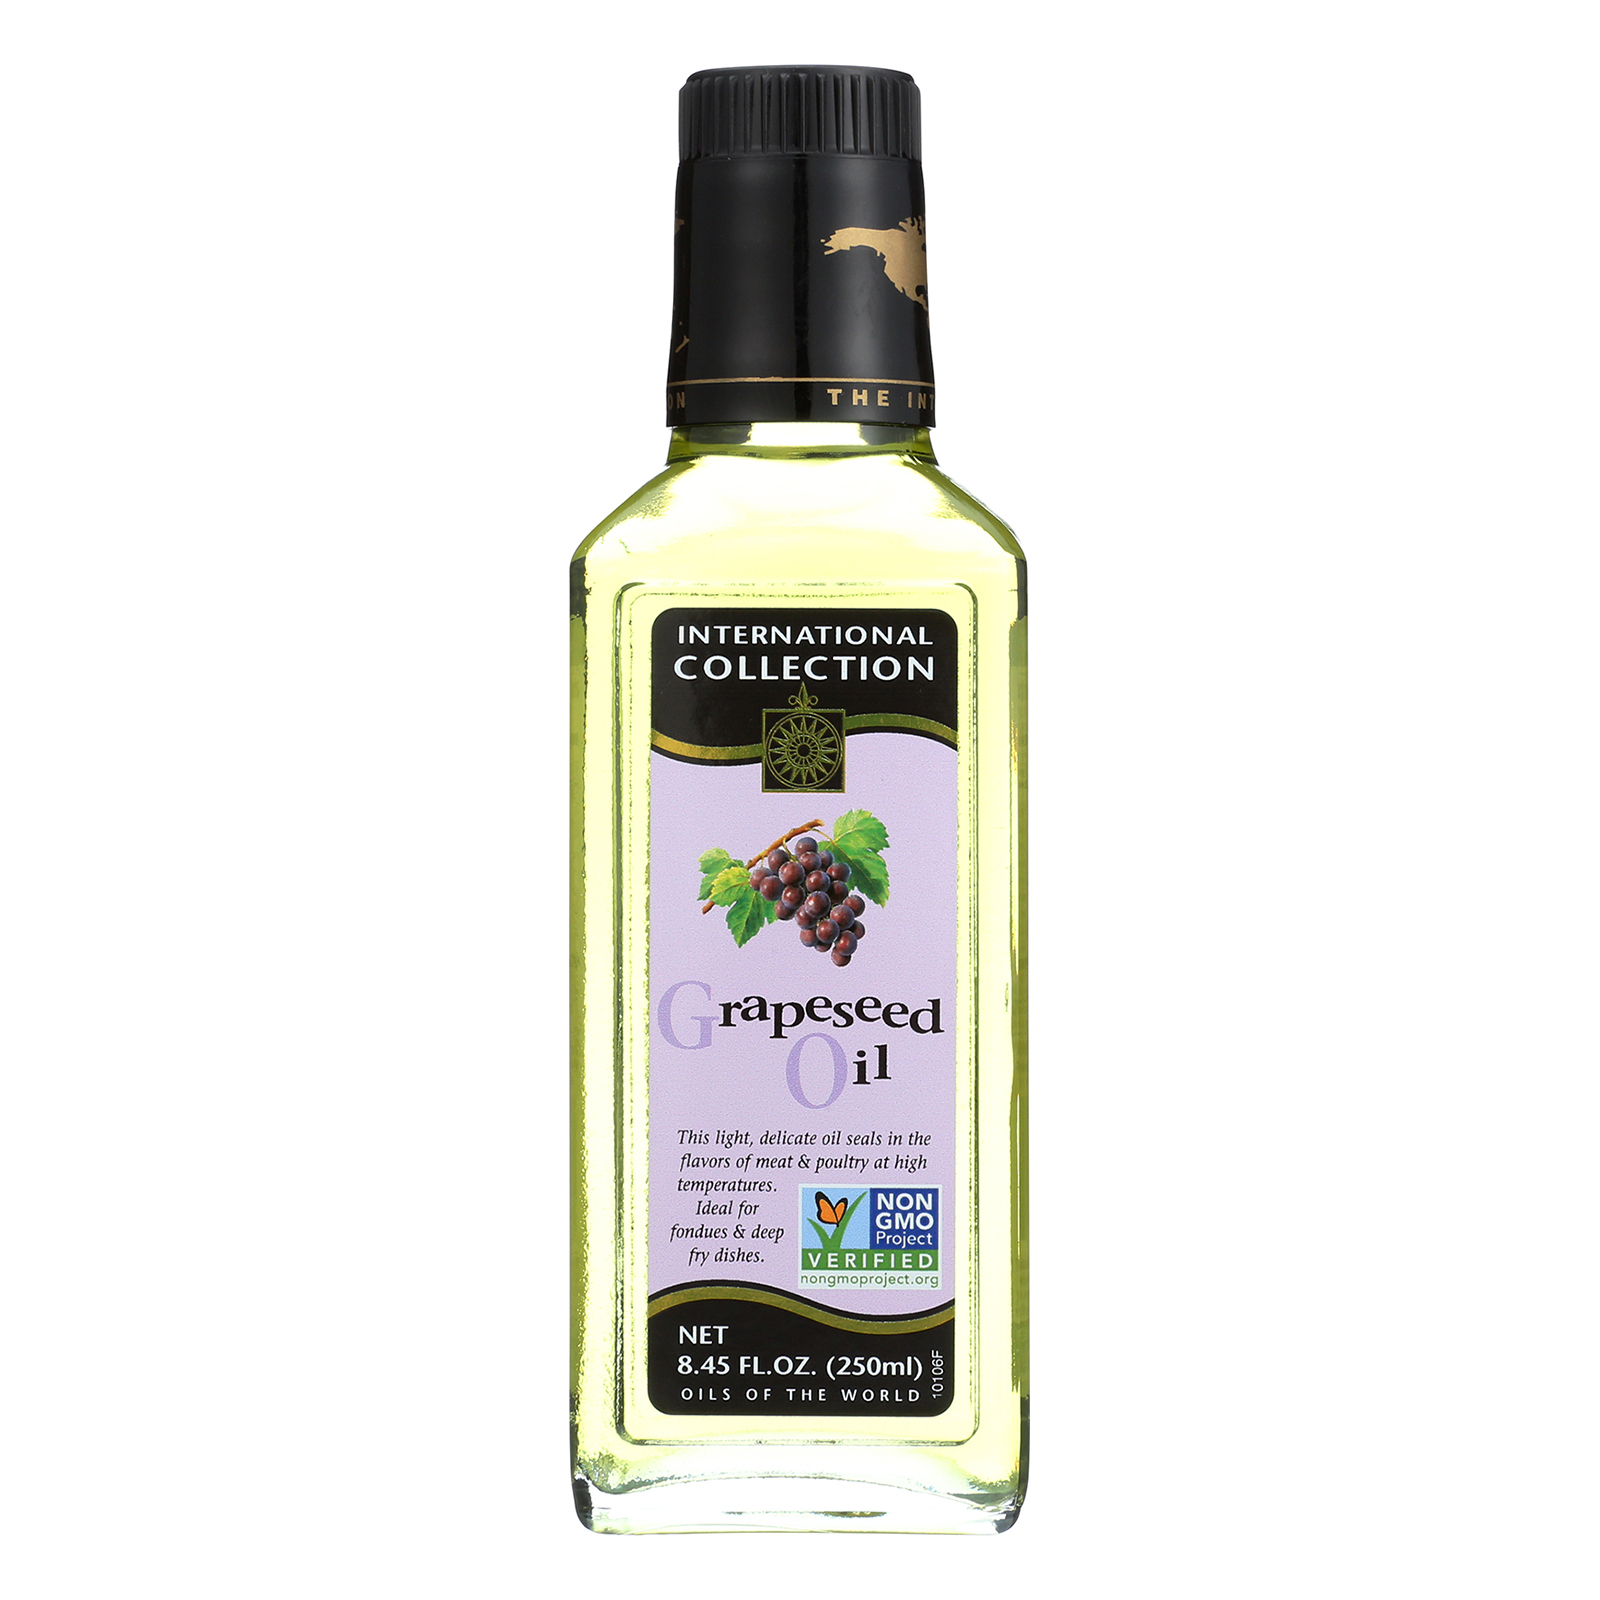 International Collection Grapeseed Oil - Case of 6 - 8.45 Fl oz.